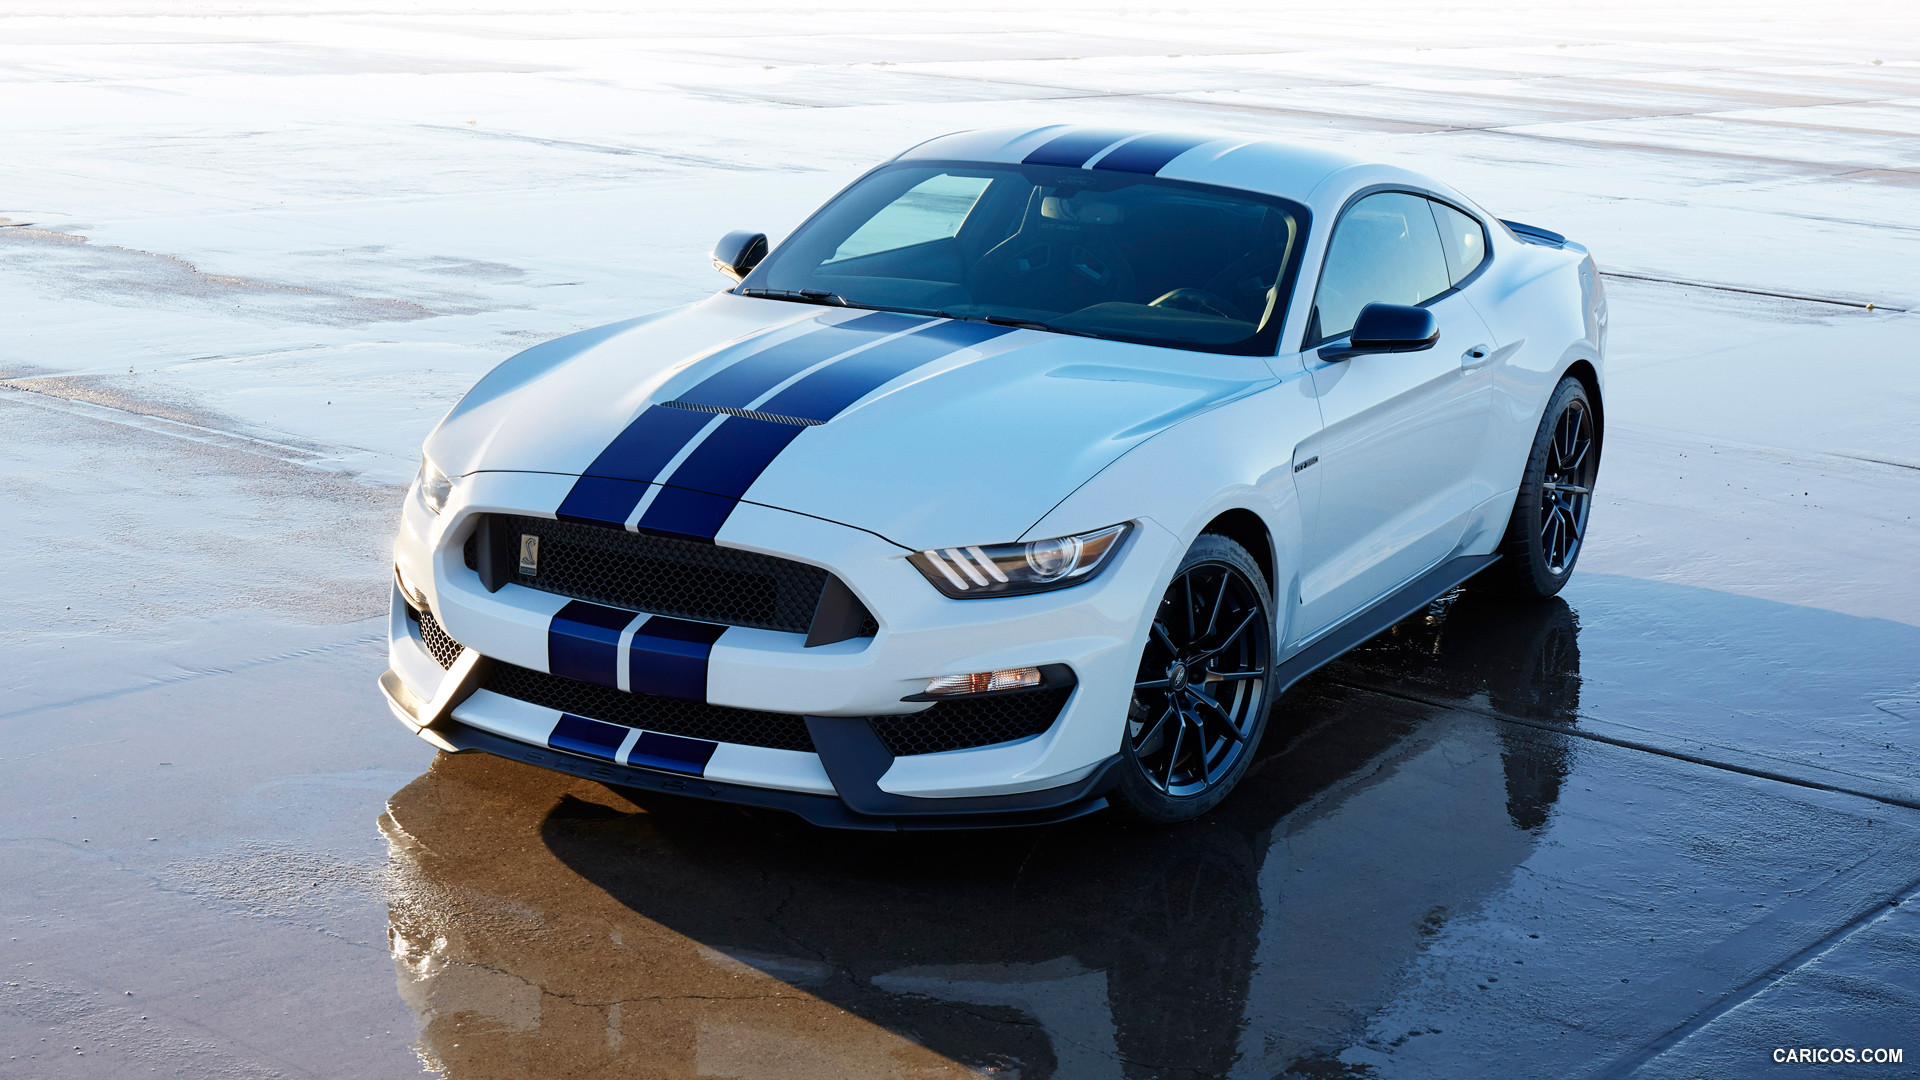 1920x1080 - Shelby Mustang GT 350 Wallpapers 1